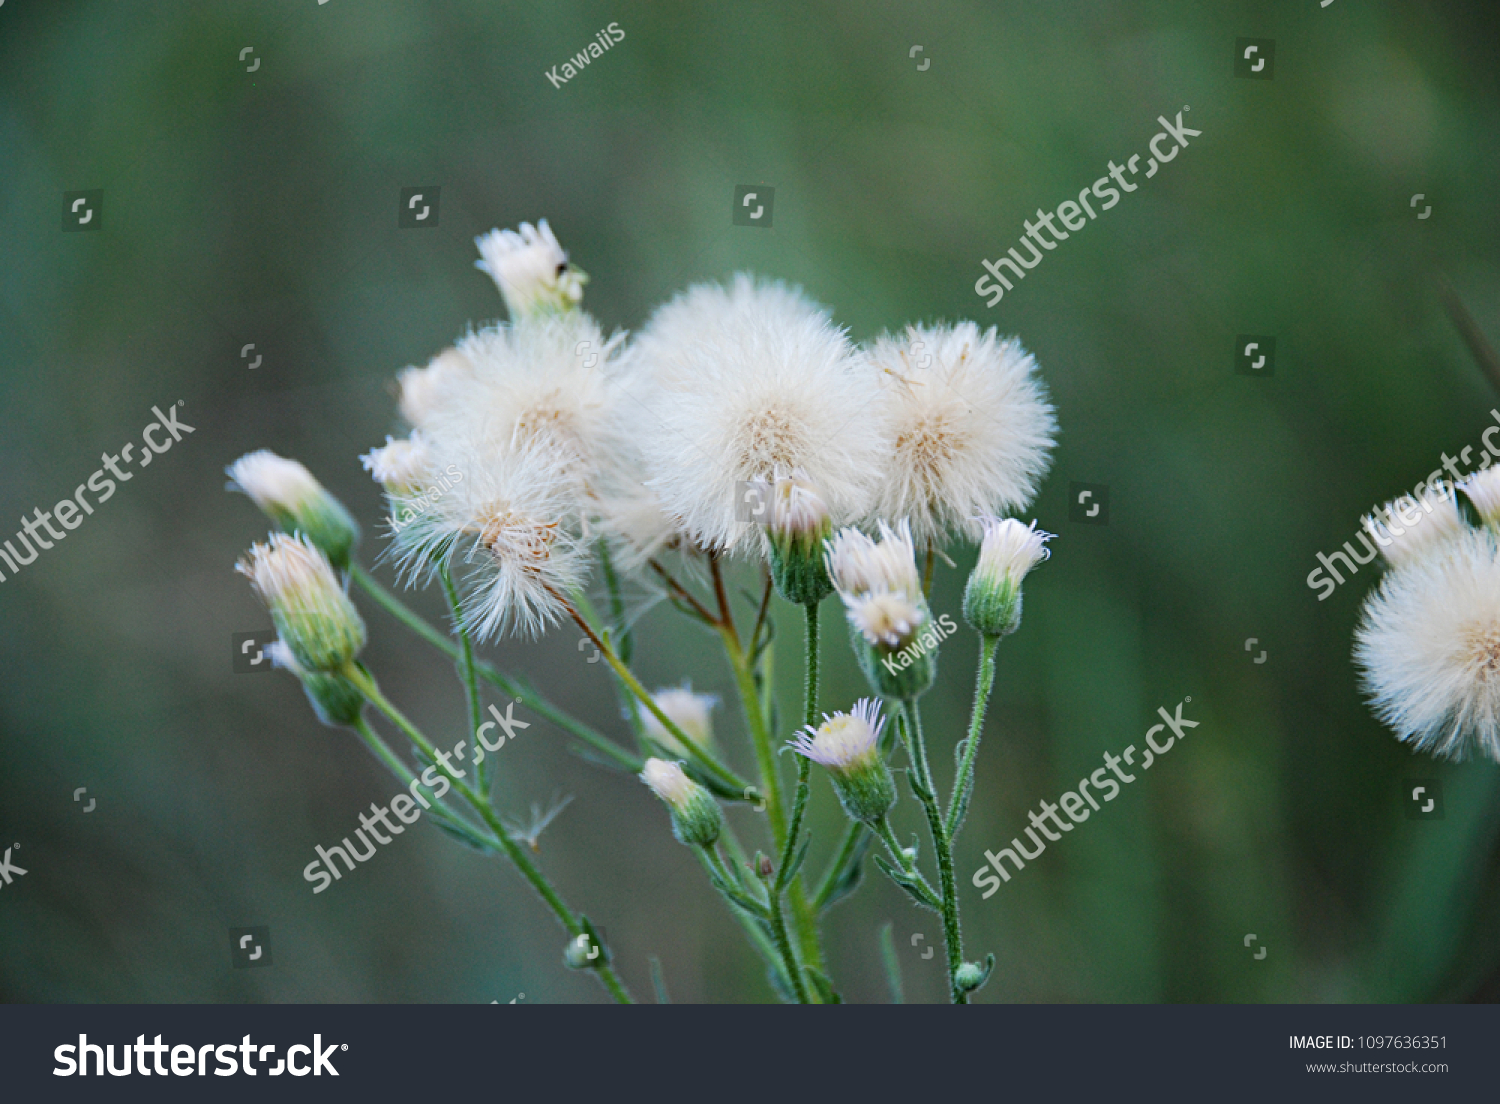 Yellow flowers white fluff similar dandelions stock photo edit now yellow flowers with white fluff similar to dandelions but this is a field milk thistle mightylinksfo